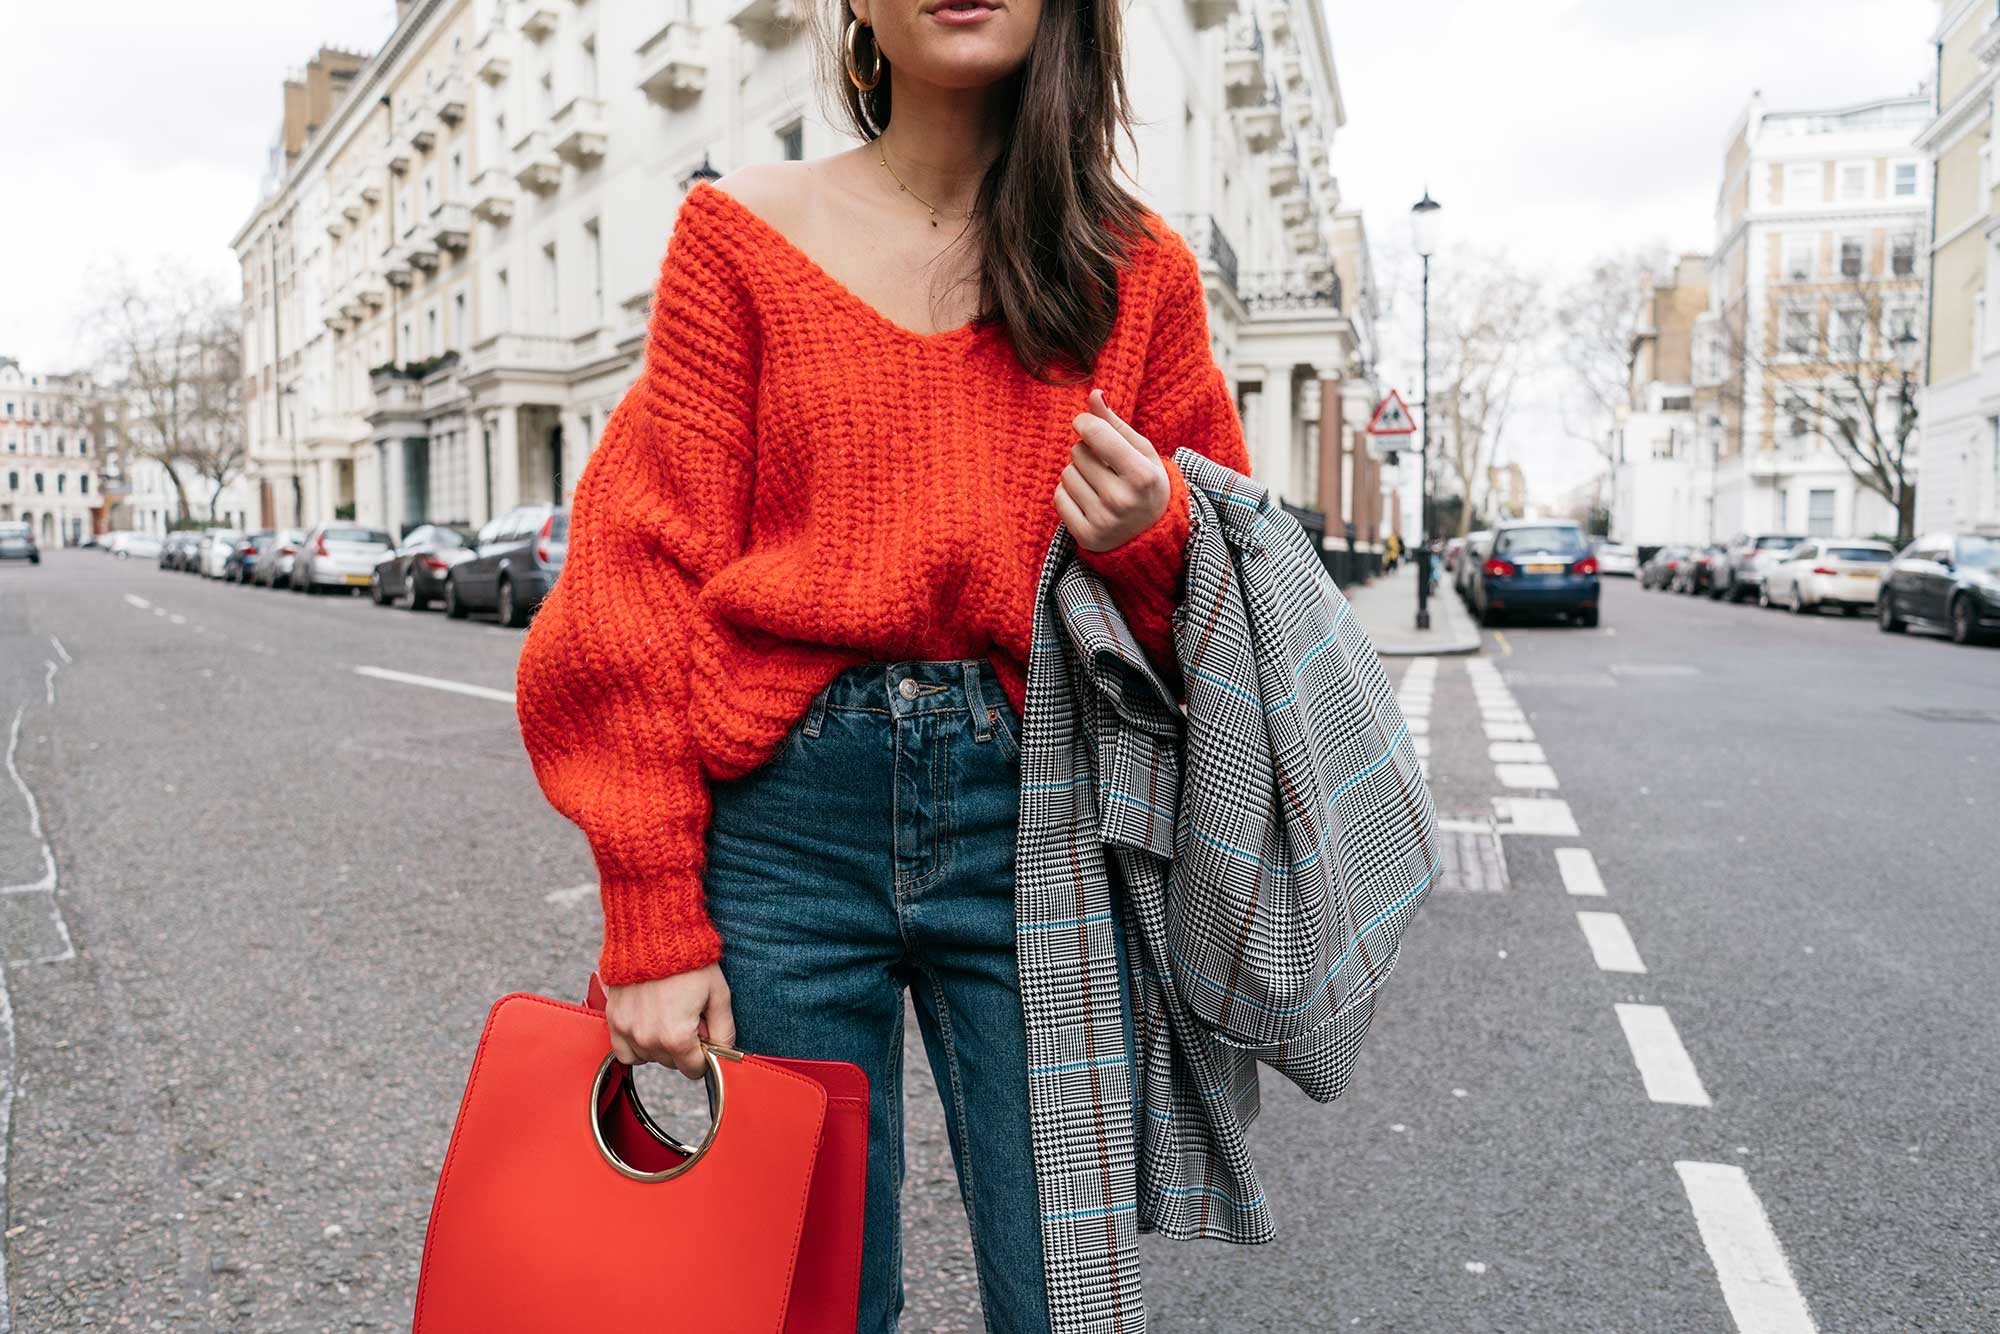 Lightweight-Check-Coat,-Salvatore-Ferragamo-Red-Leather-Tote,--Mom-jeans,-London-Fall-Outfit-Red-Accessories-11.jpg